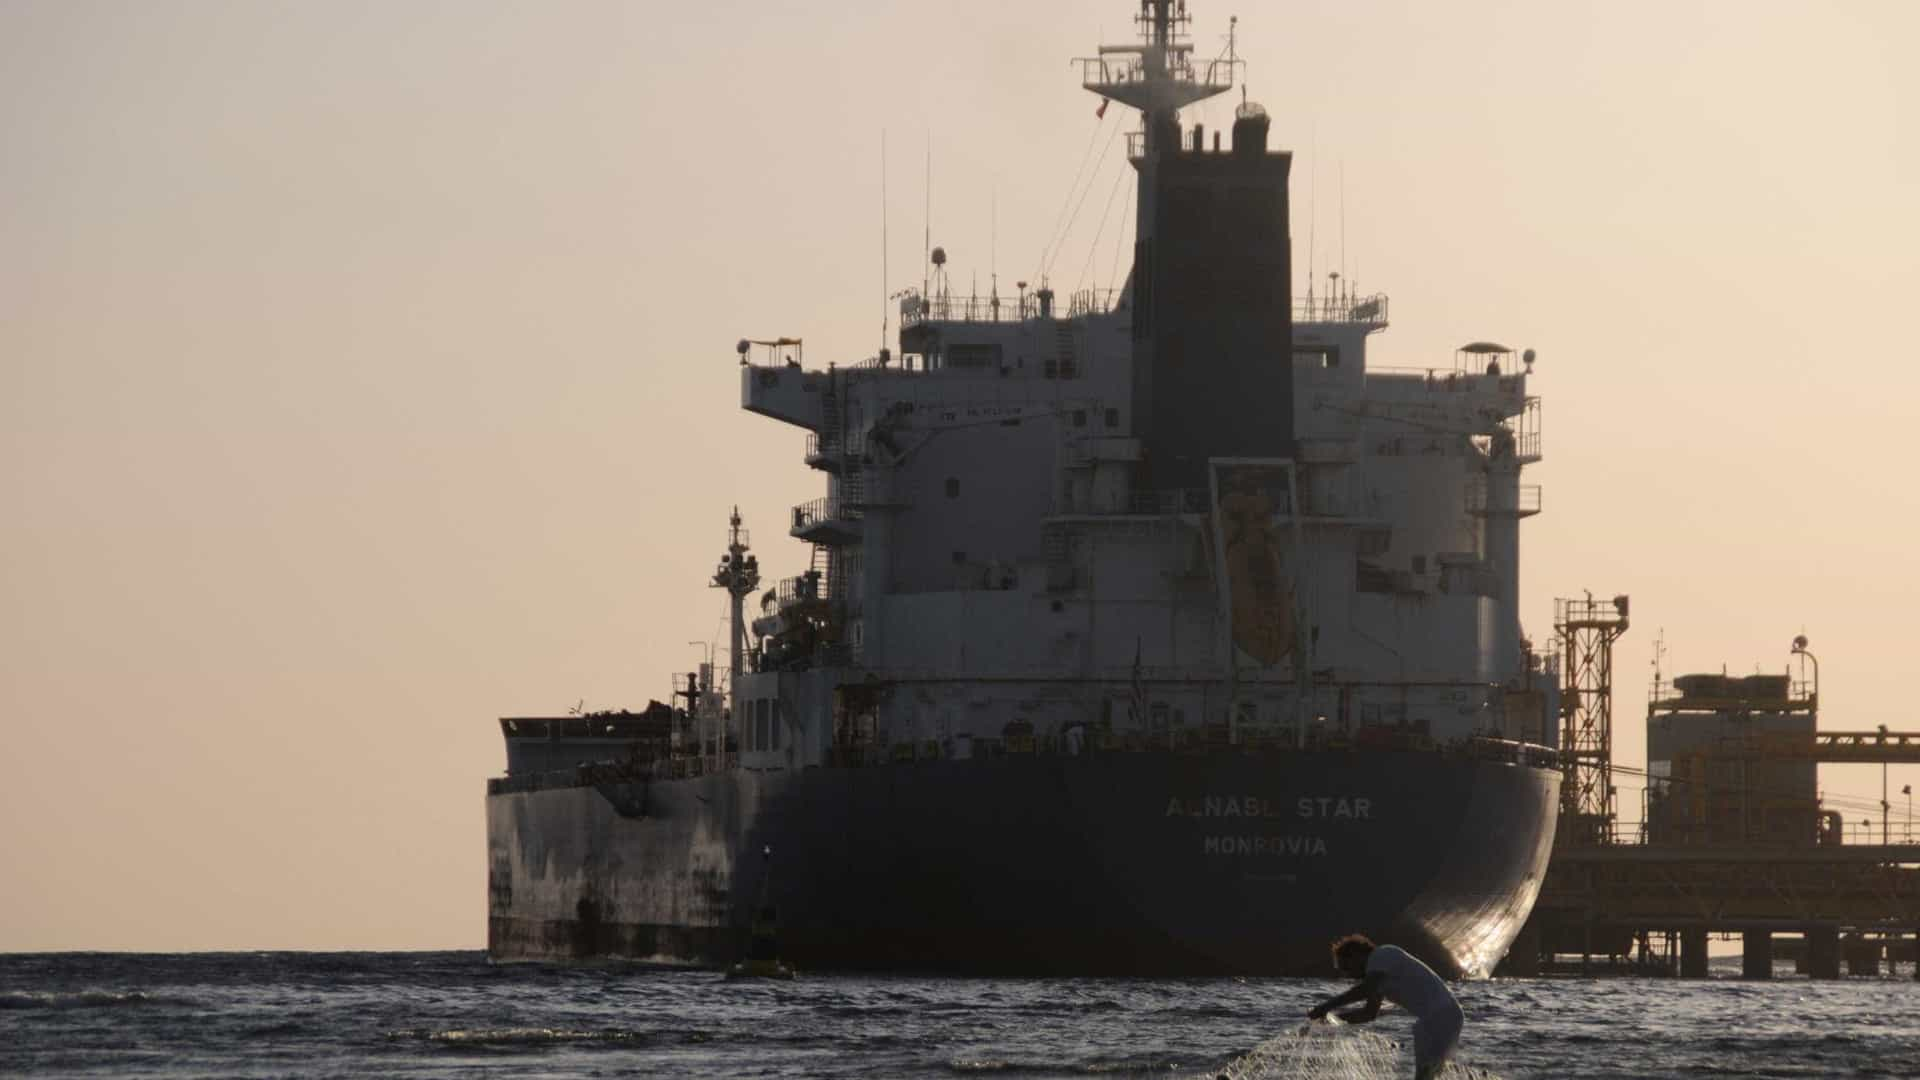 Petroleiro iraniano afunda no Mar da China